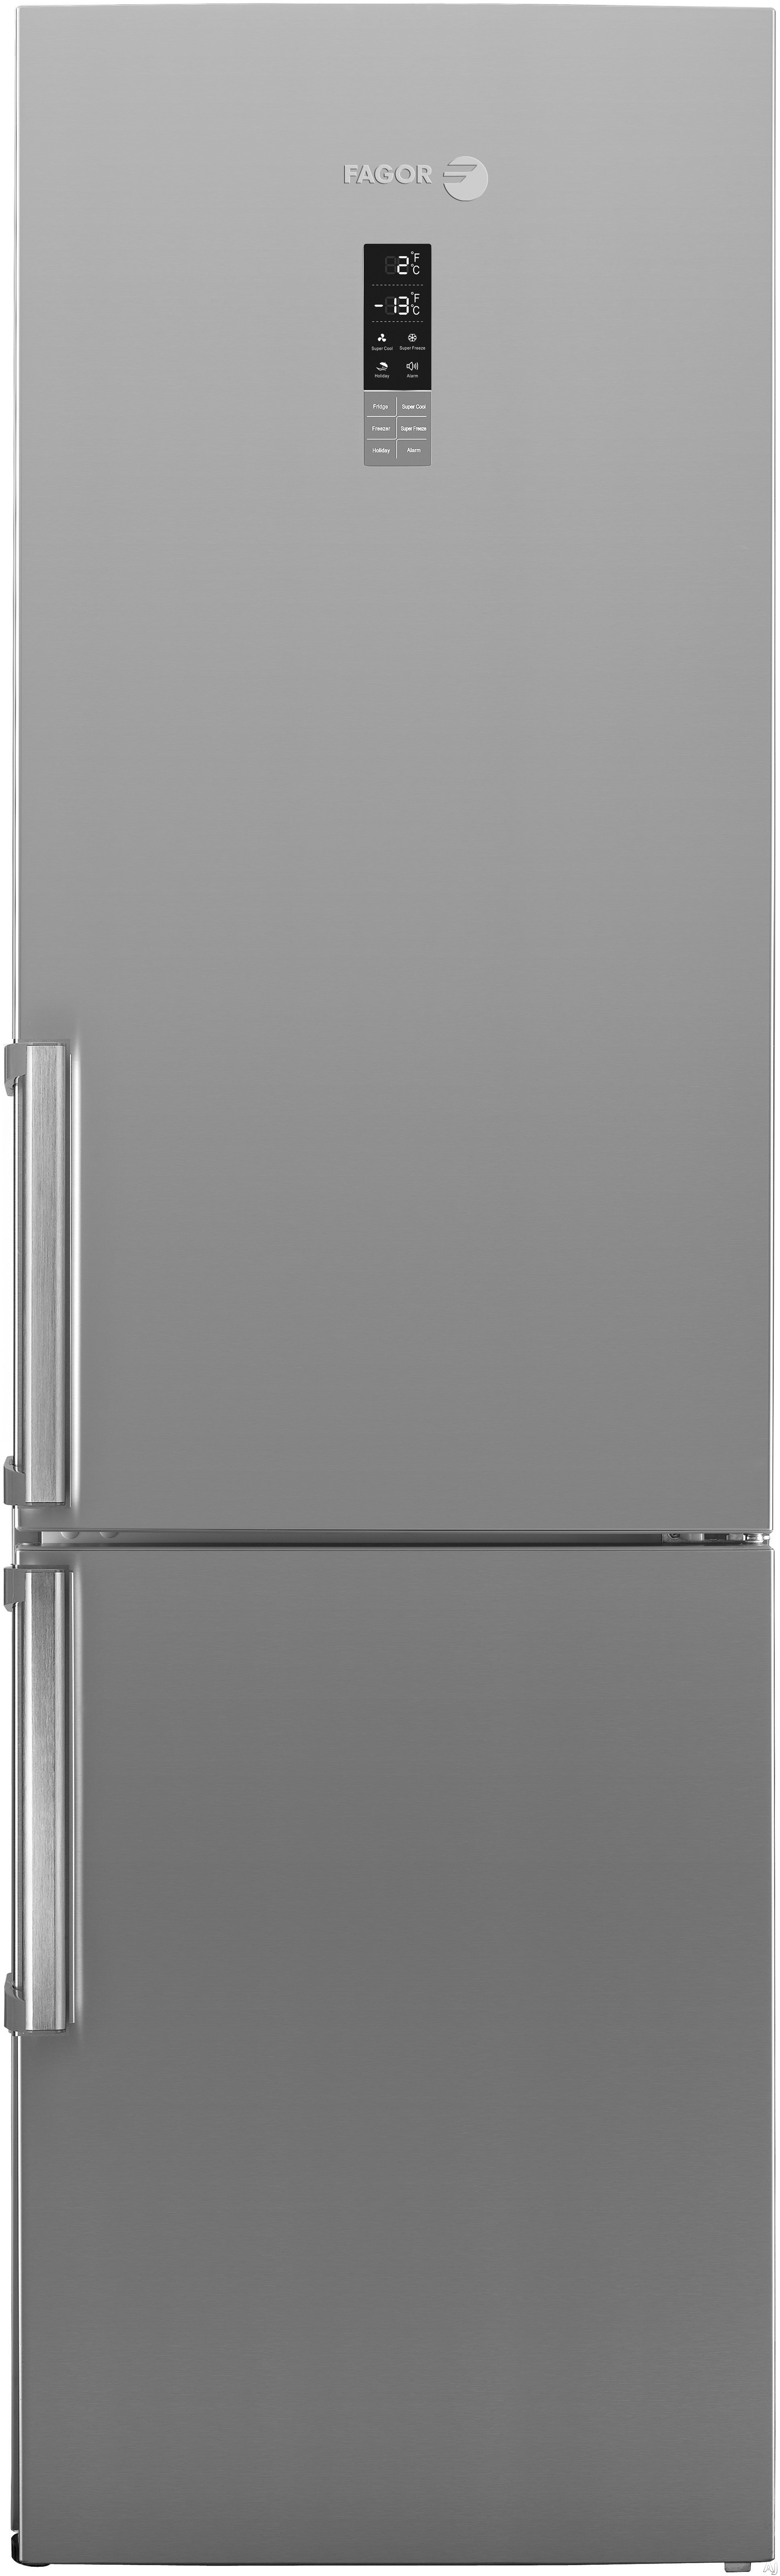 Fagor BMF200X 24 Inch Counter-Depth Bottom-Freezer with 12.7 cu. ft. Capacity, Adjustable Glass Shelves, Multifresh Compartments, Superfreezing, Door Alarm, LCD Touch Screen On Door and Energy Star Rated